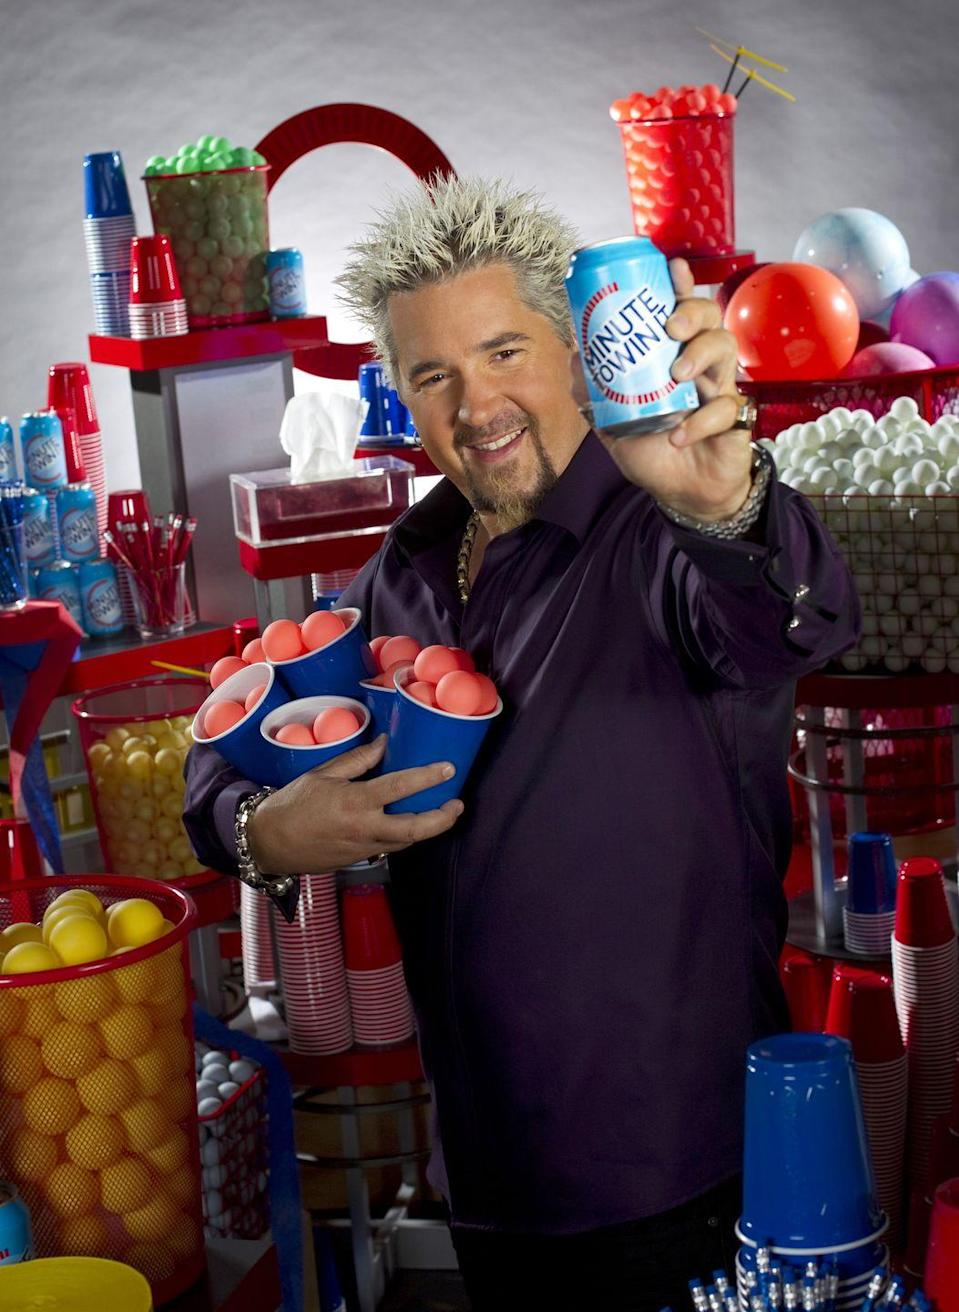 <p>Even though Guy Fieri is known as a chef and restaurateur, he also hosted this popular show on NBC back in 2013. Contestants had one minute to complete a series of games for up to $1 million as the cash prize. The games involved regular household items, like plastic cups and marbles. The show aired for two more seasons on GSN, with Nick Jonas as the host.</p>